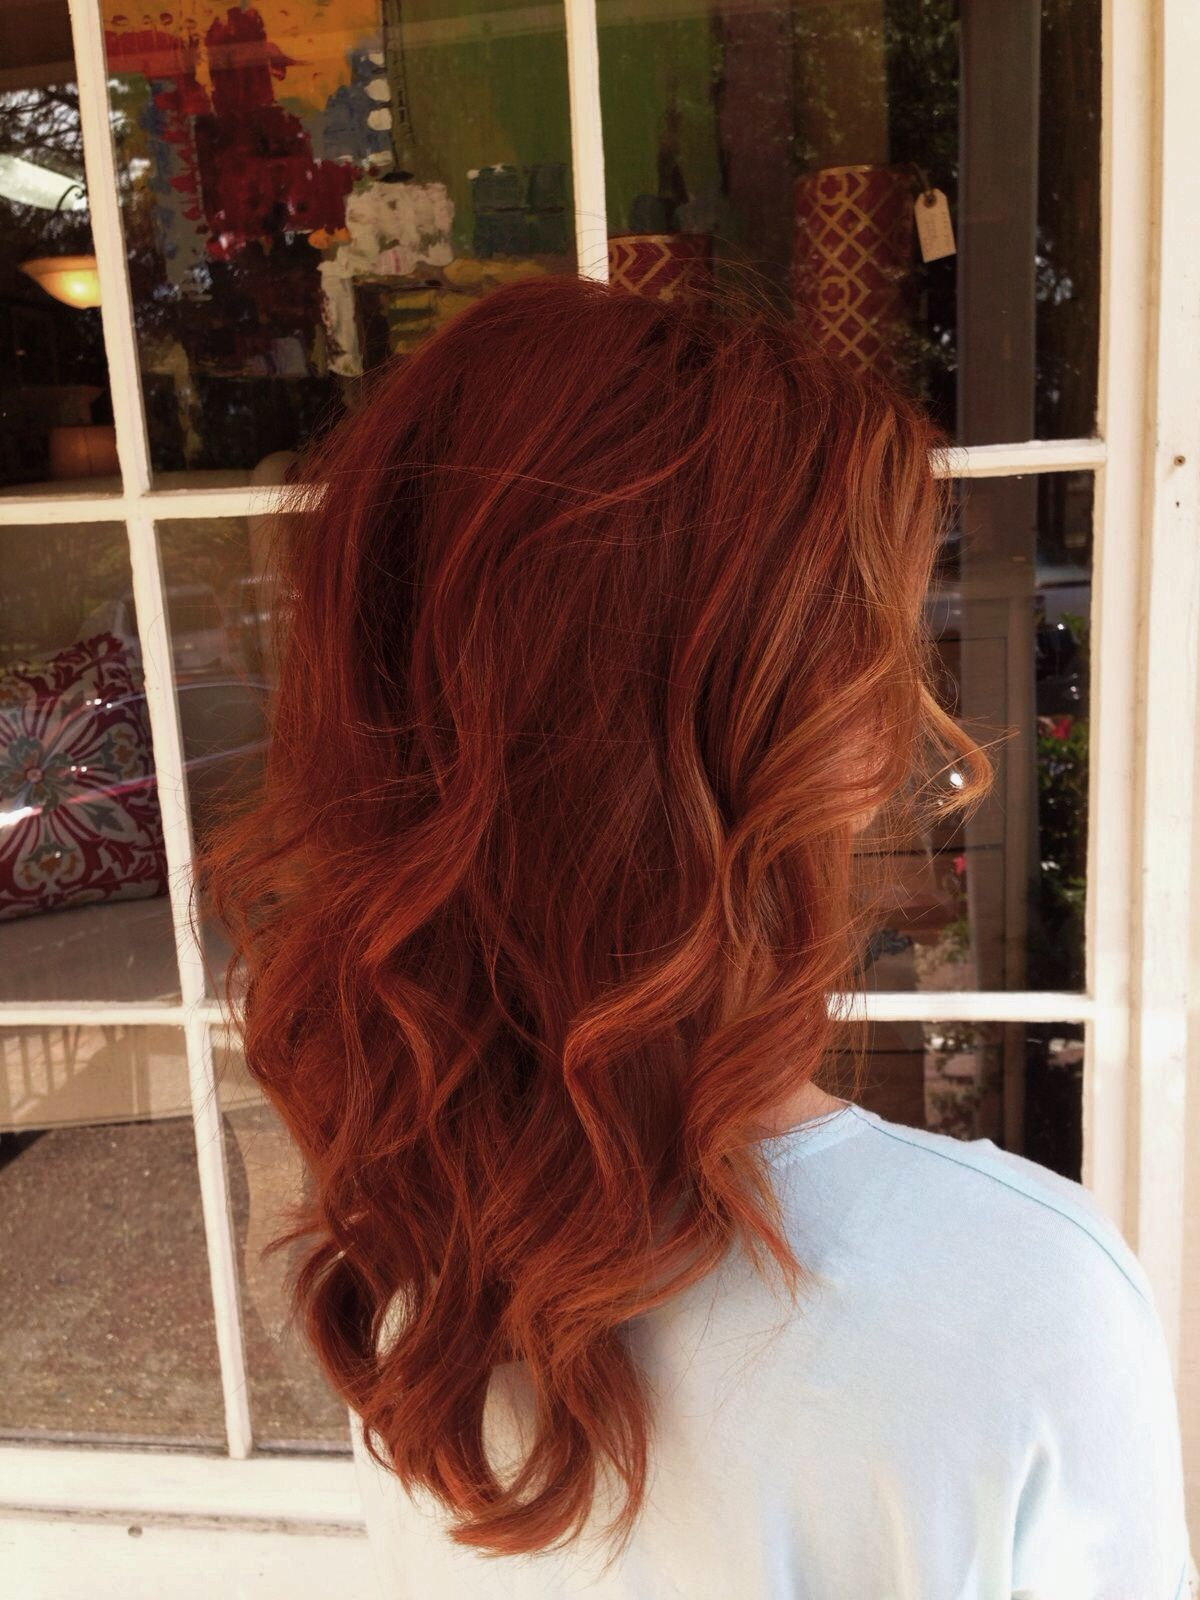 Auburn Hair Just The Name Of That Colour Is So